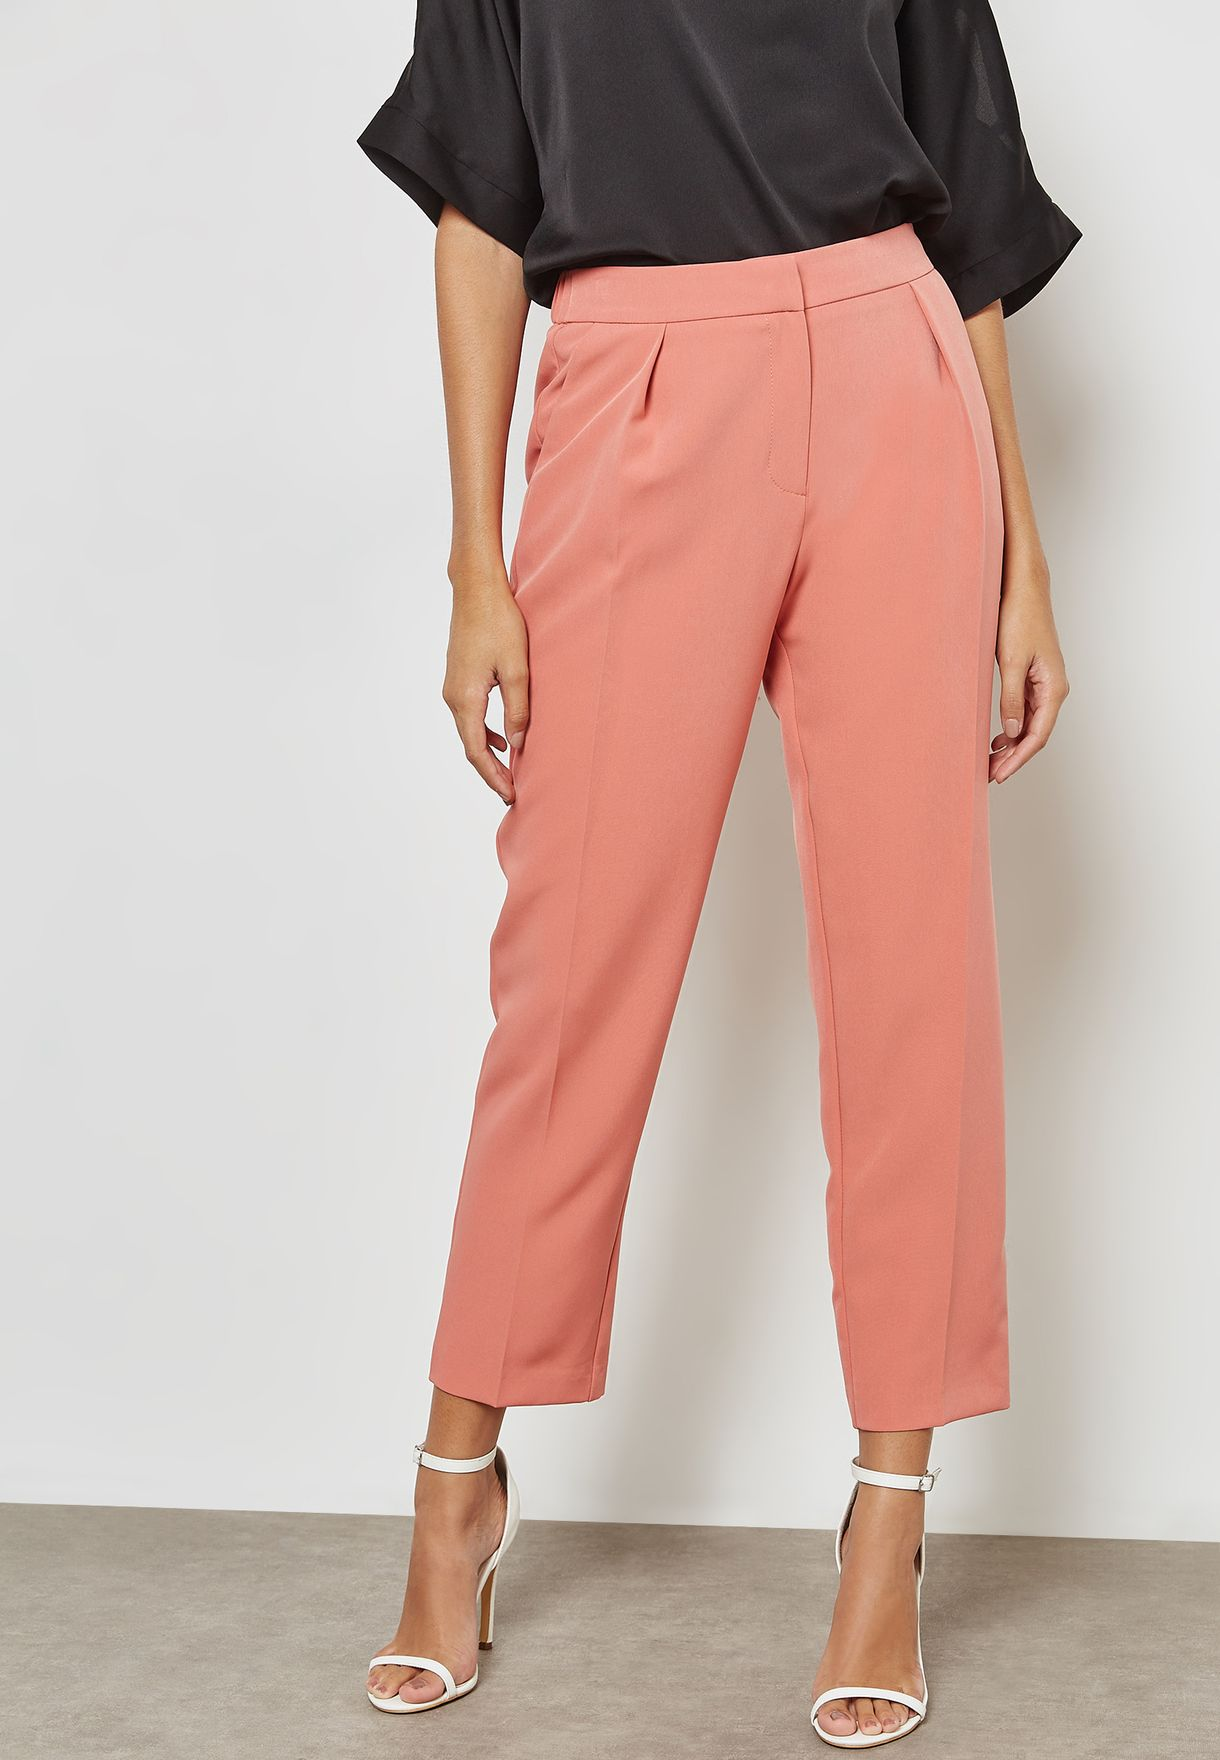 Ankle Grazer Pencil Pants